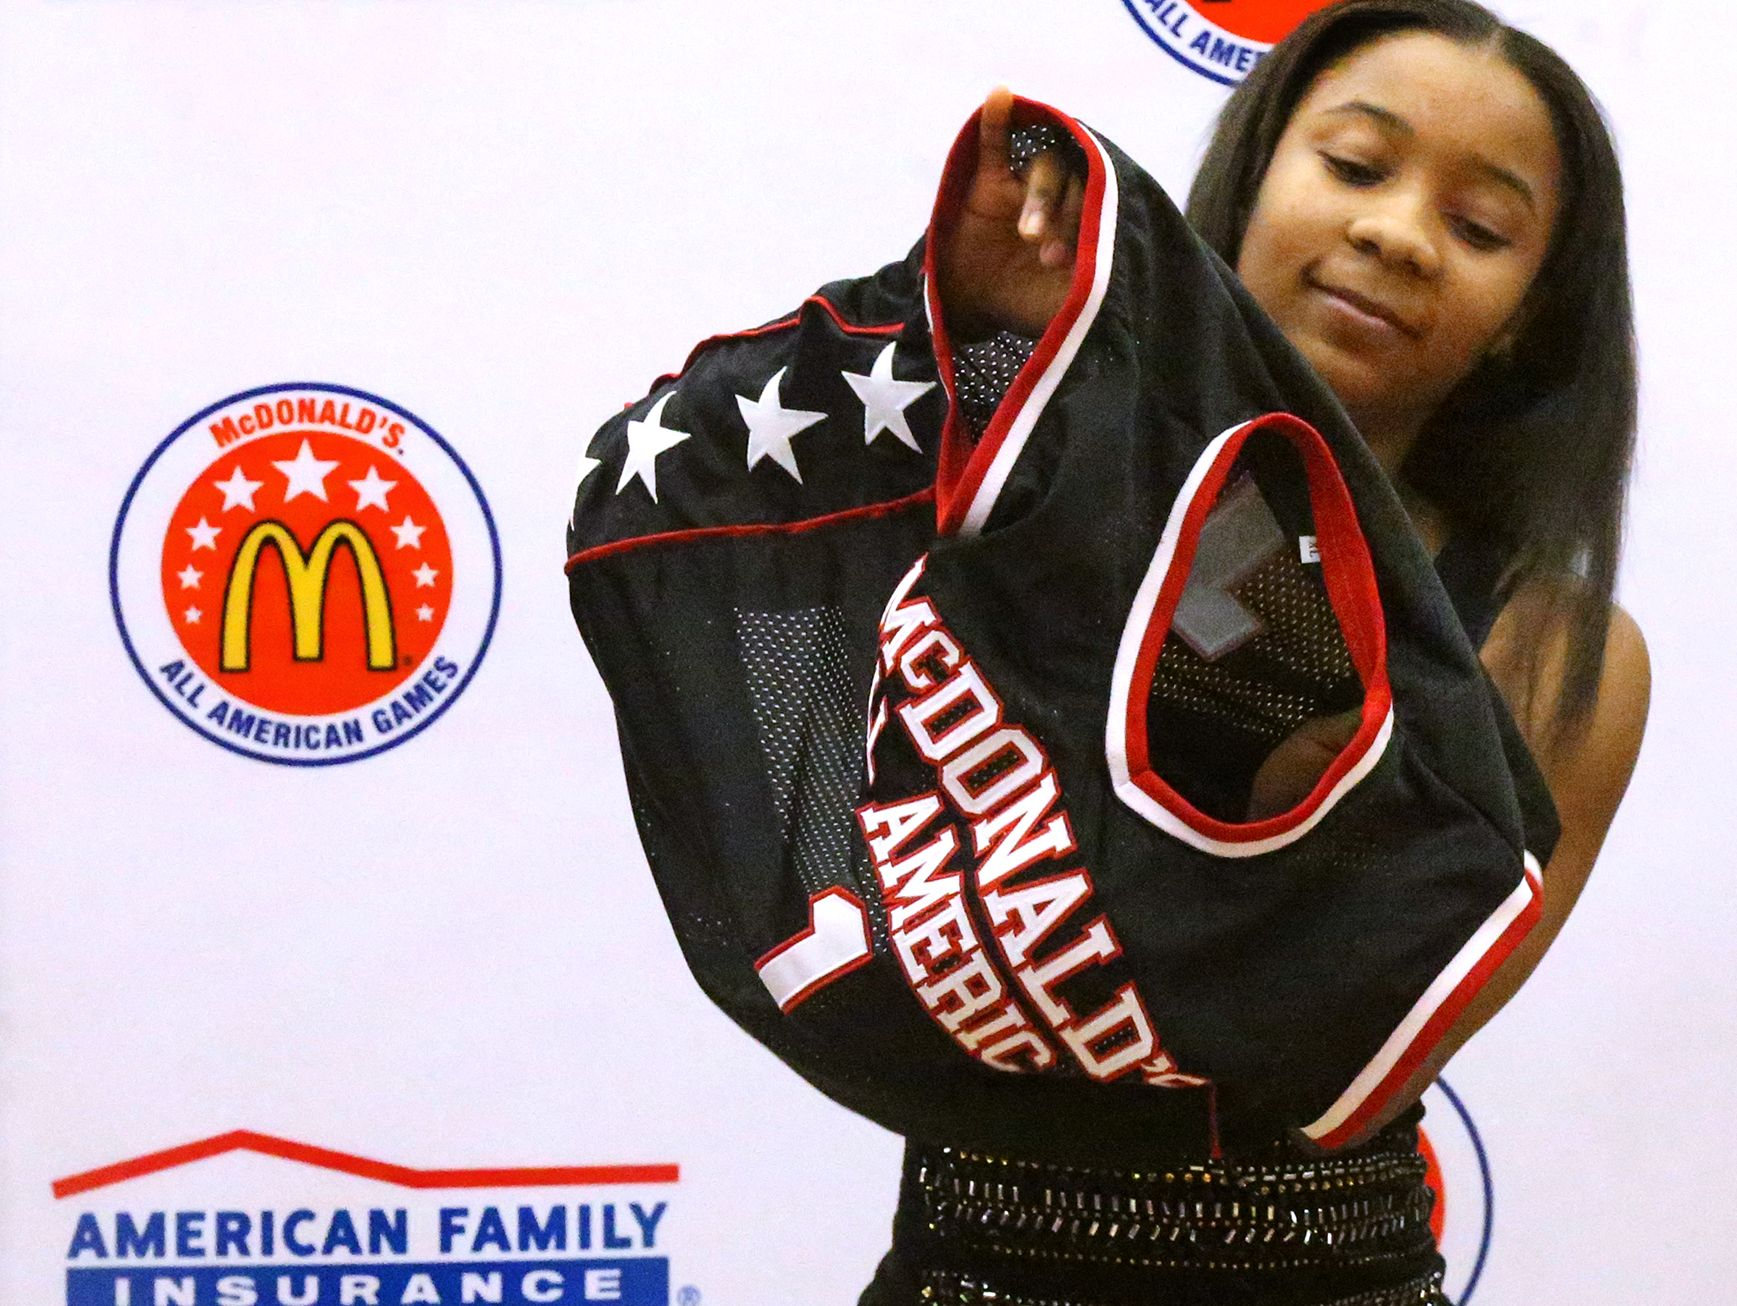 Riverdale's Anastasia Hayes was puts on her McDonald's All American jersey on Tuesday, Feb. 21, 2017, at the school after being named as part of the 40th All American team. (Photo: Tennessean)